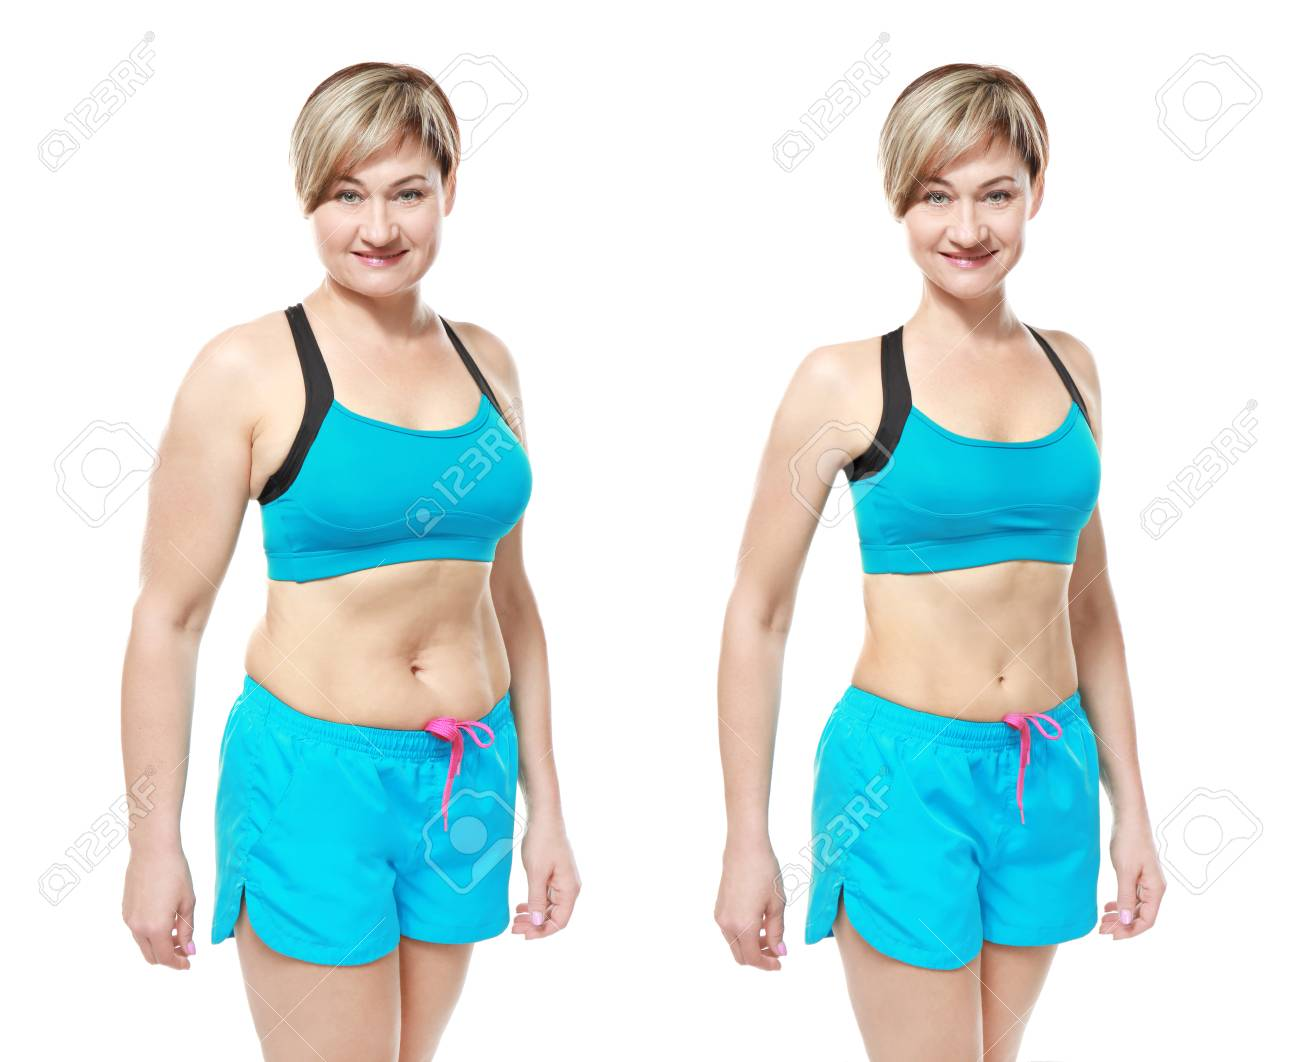 Mature Woman Before And After Weight Loss On White Background